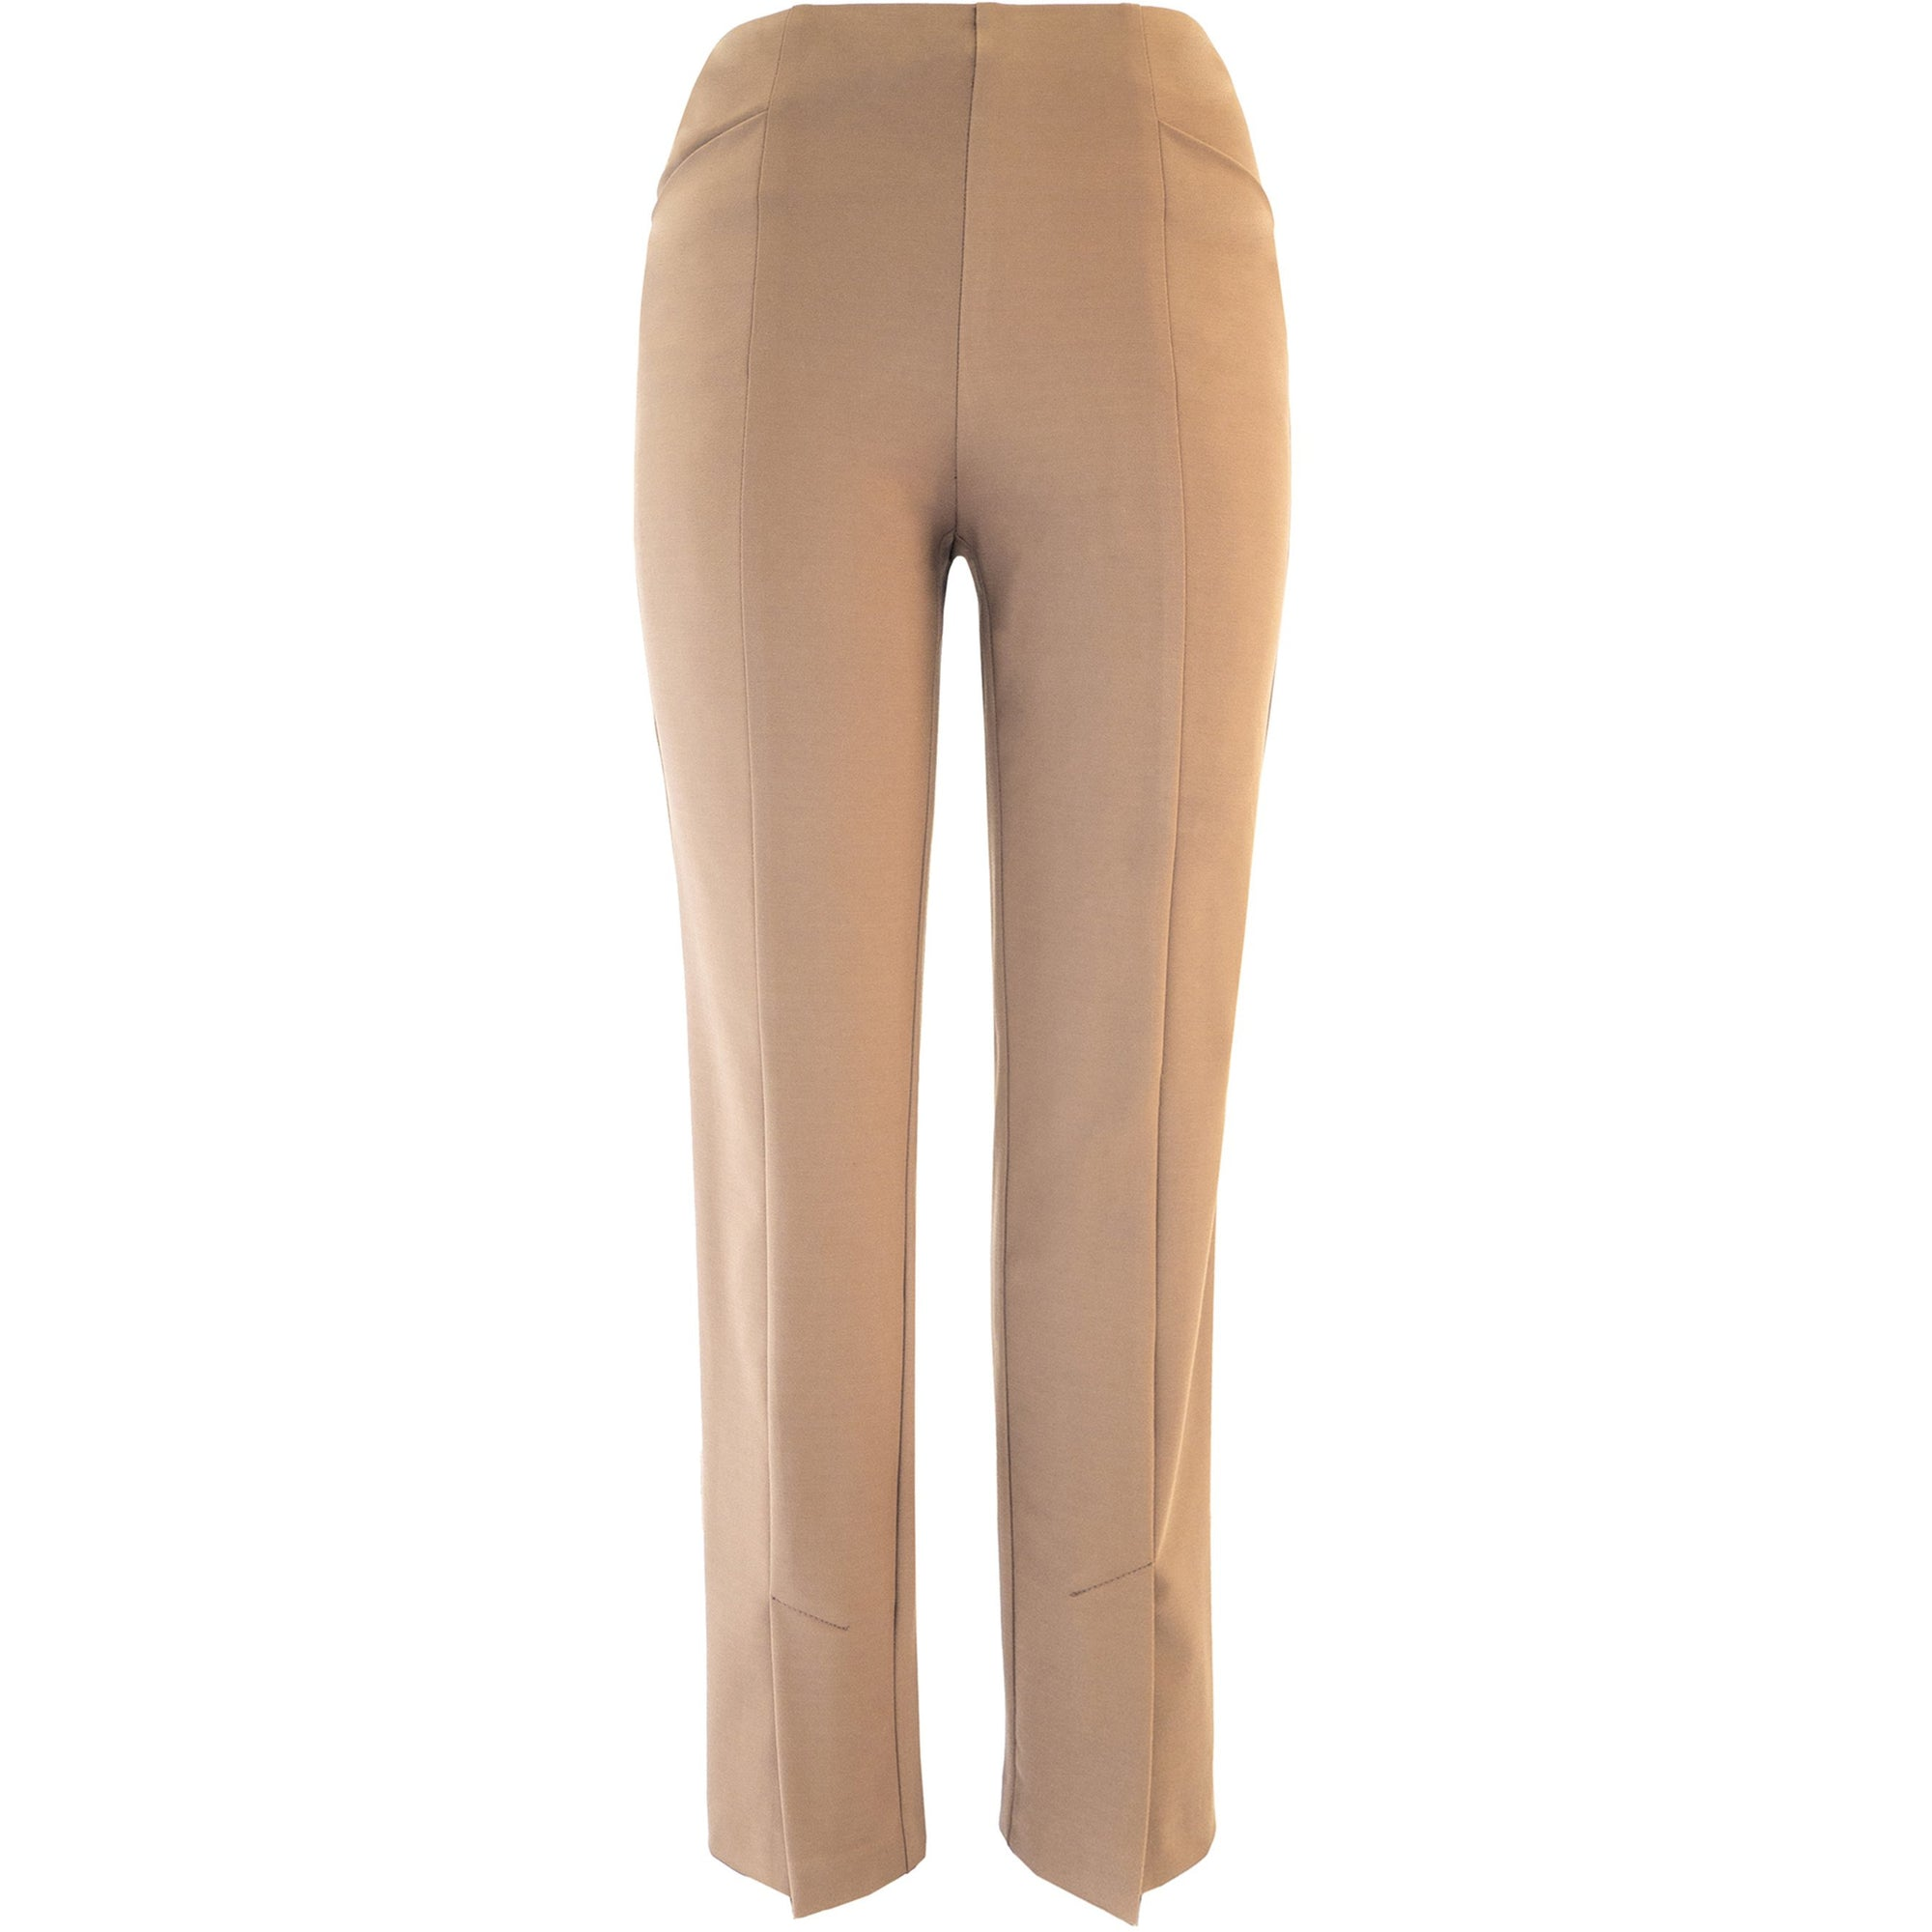 Up! Pant Compression Hugger Pant in Camel